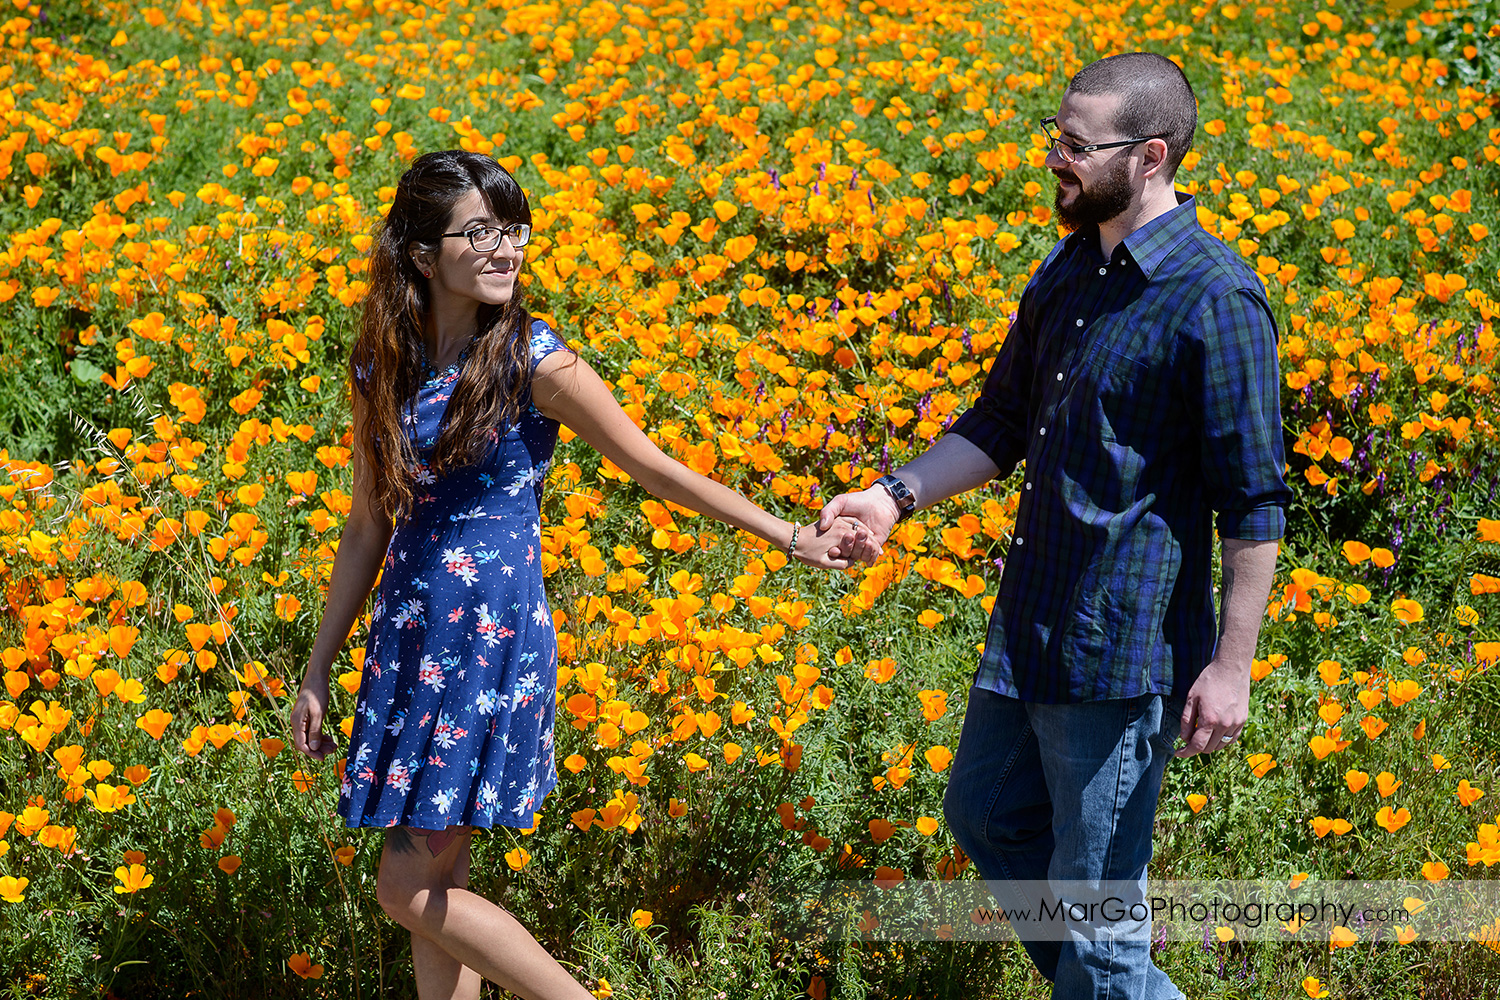 man in blue shirt and woman in blue dress holding hands and walking among orange poppies during engagement session at Sunol Regional Wilderness